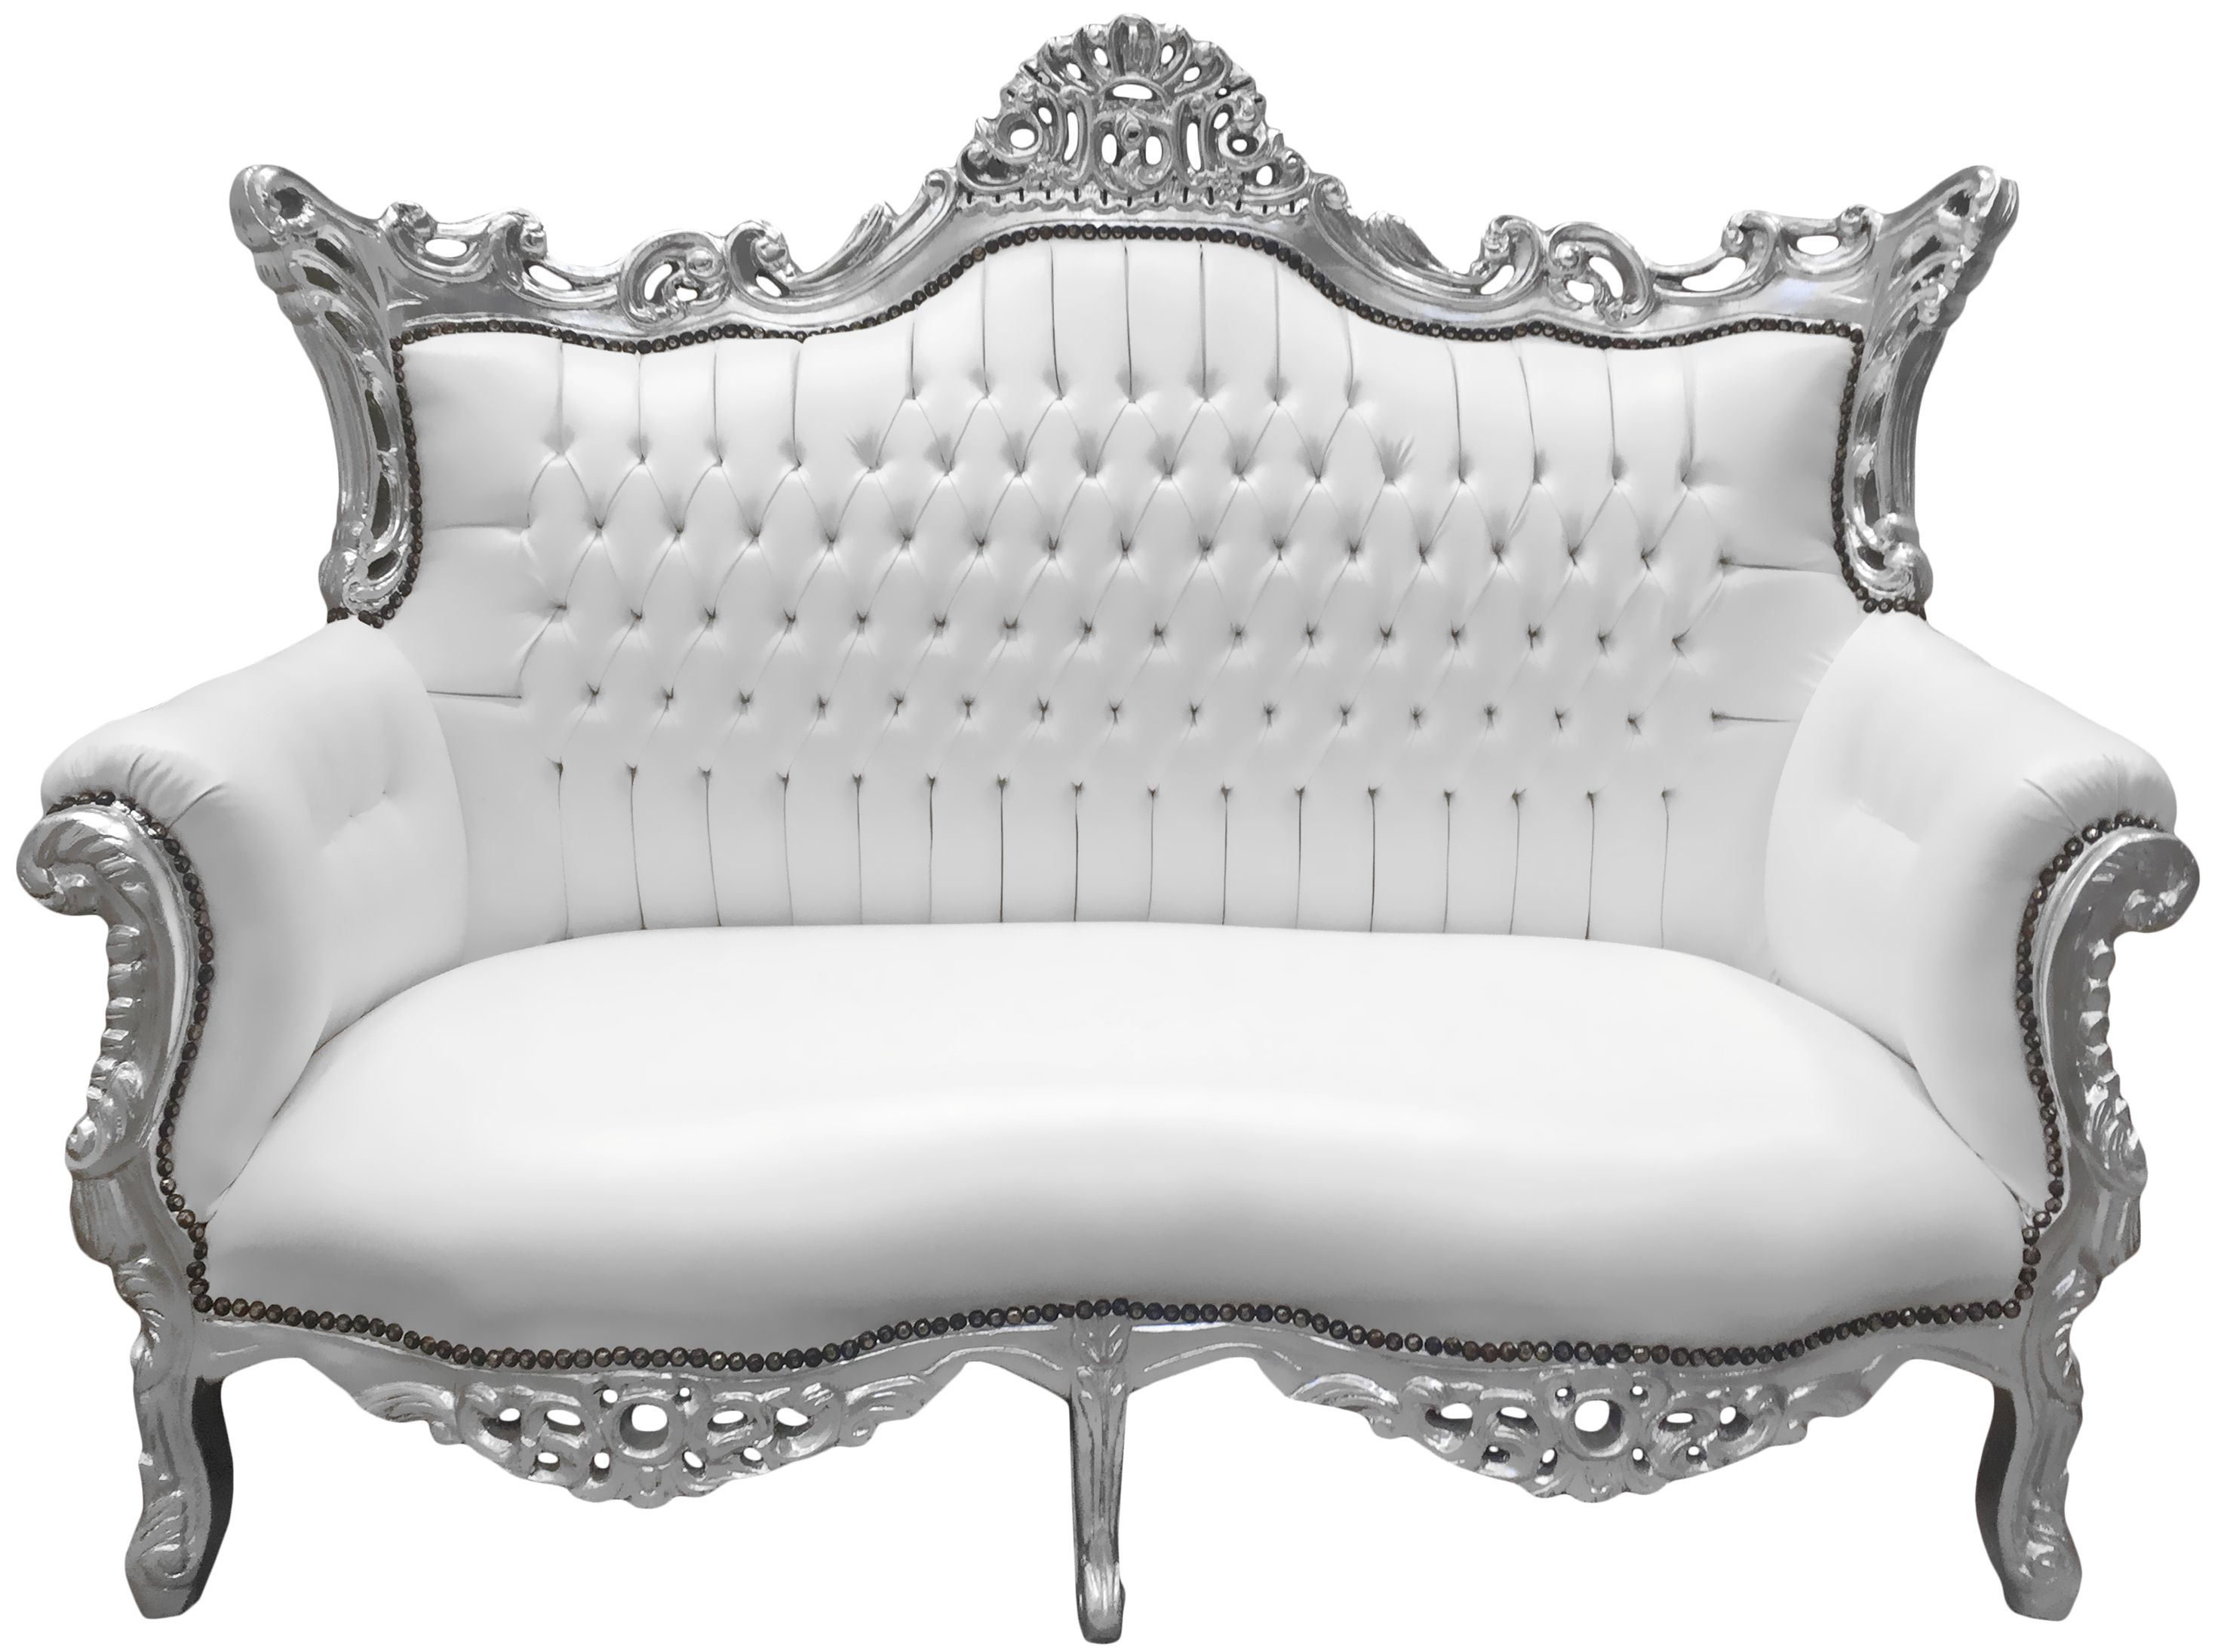 Giant Sofa Rococo Style Bench Royal Sofa Wood Baroque French Louis Xv Carved Furniture